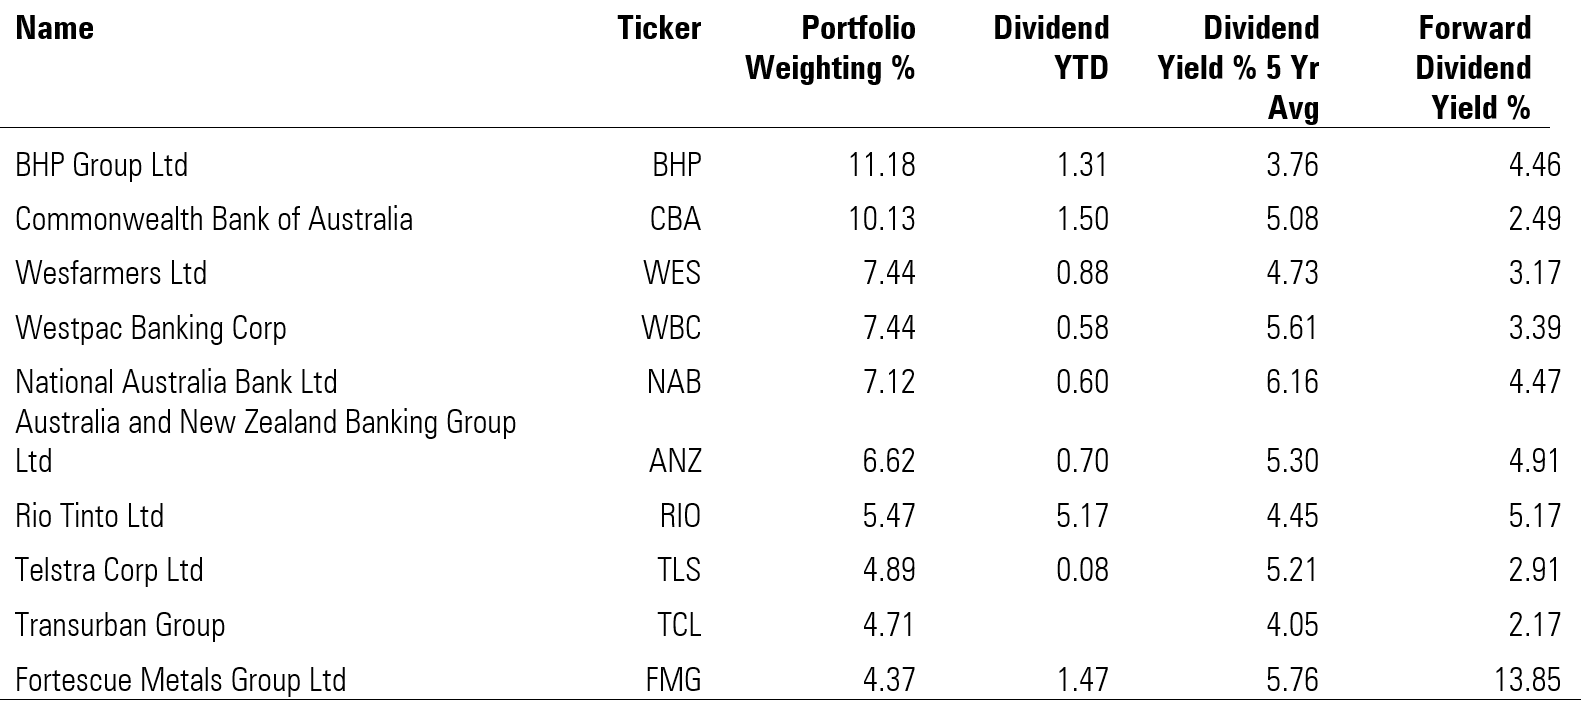 Top 10 holdings and dividend performance